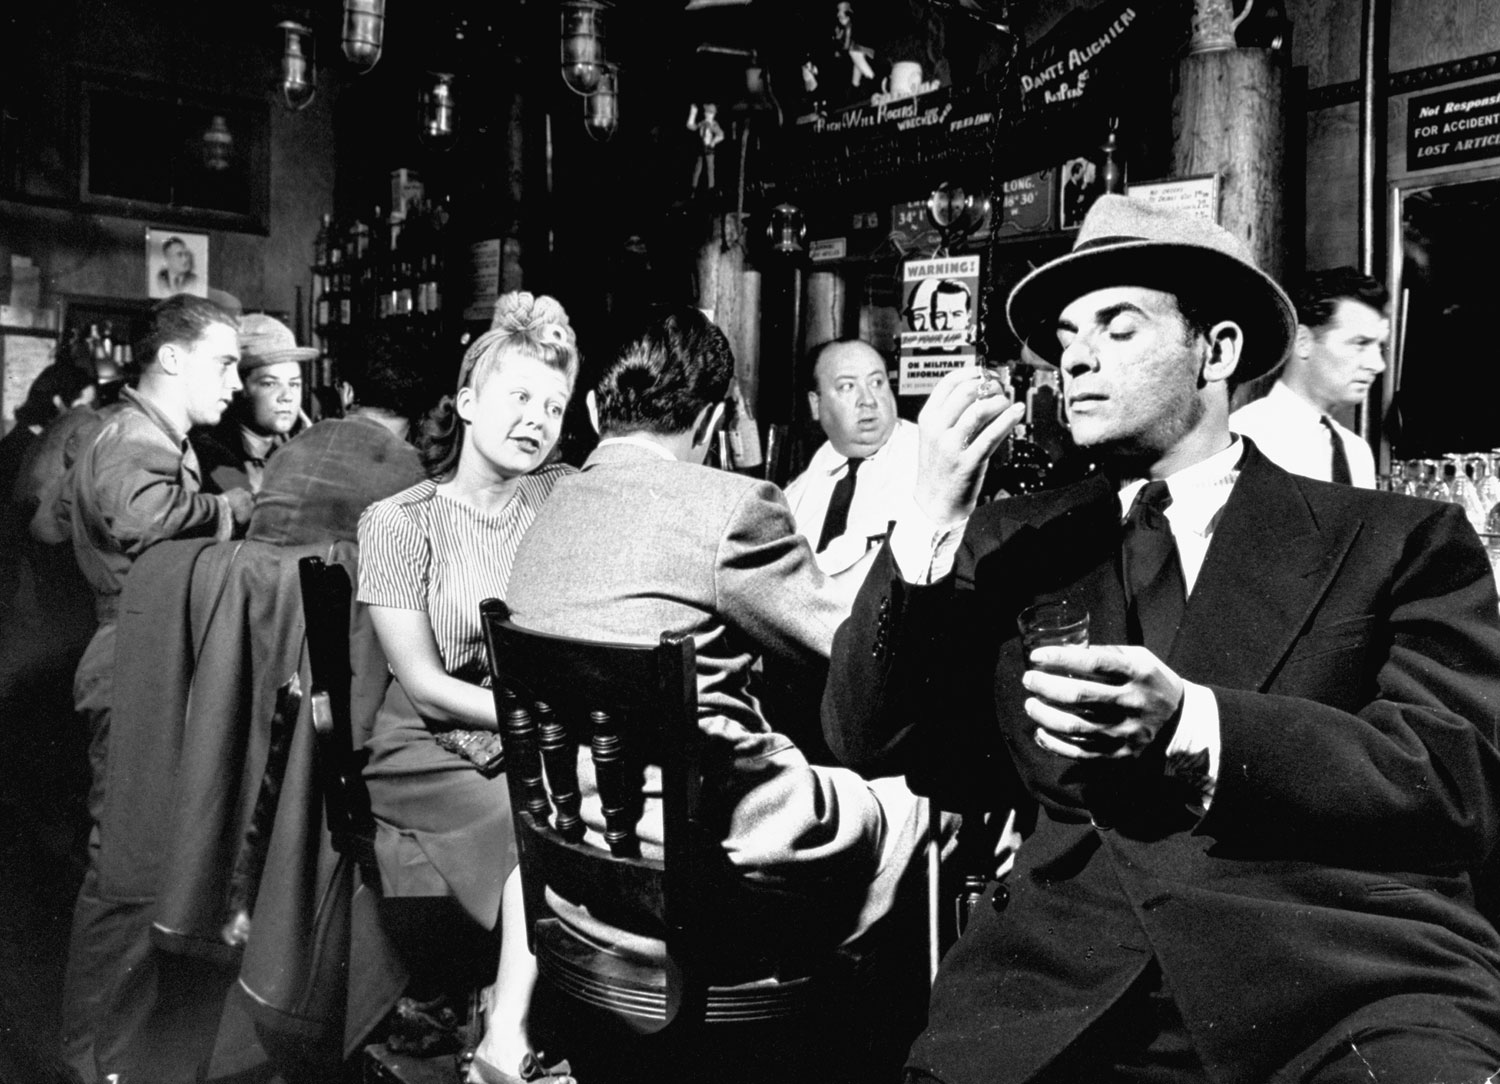 "<strong>Caption from LIFE.</strong> ""At the Friendship Cafe the manicurist tells her boyfriend: 'A customer told me today that lots of our troopships are sailing to Australia on Friday at midnight.' The shady-looking man standing next to them listens attentively. (Note bartender played by Alfred Hitchcock, center)."""